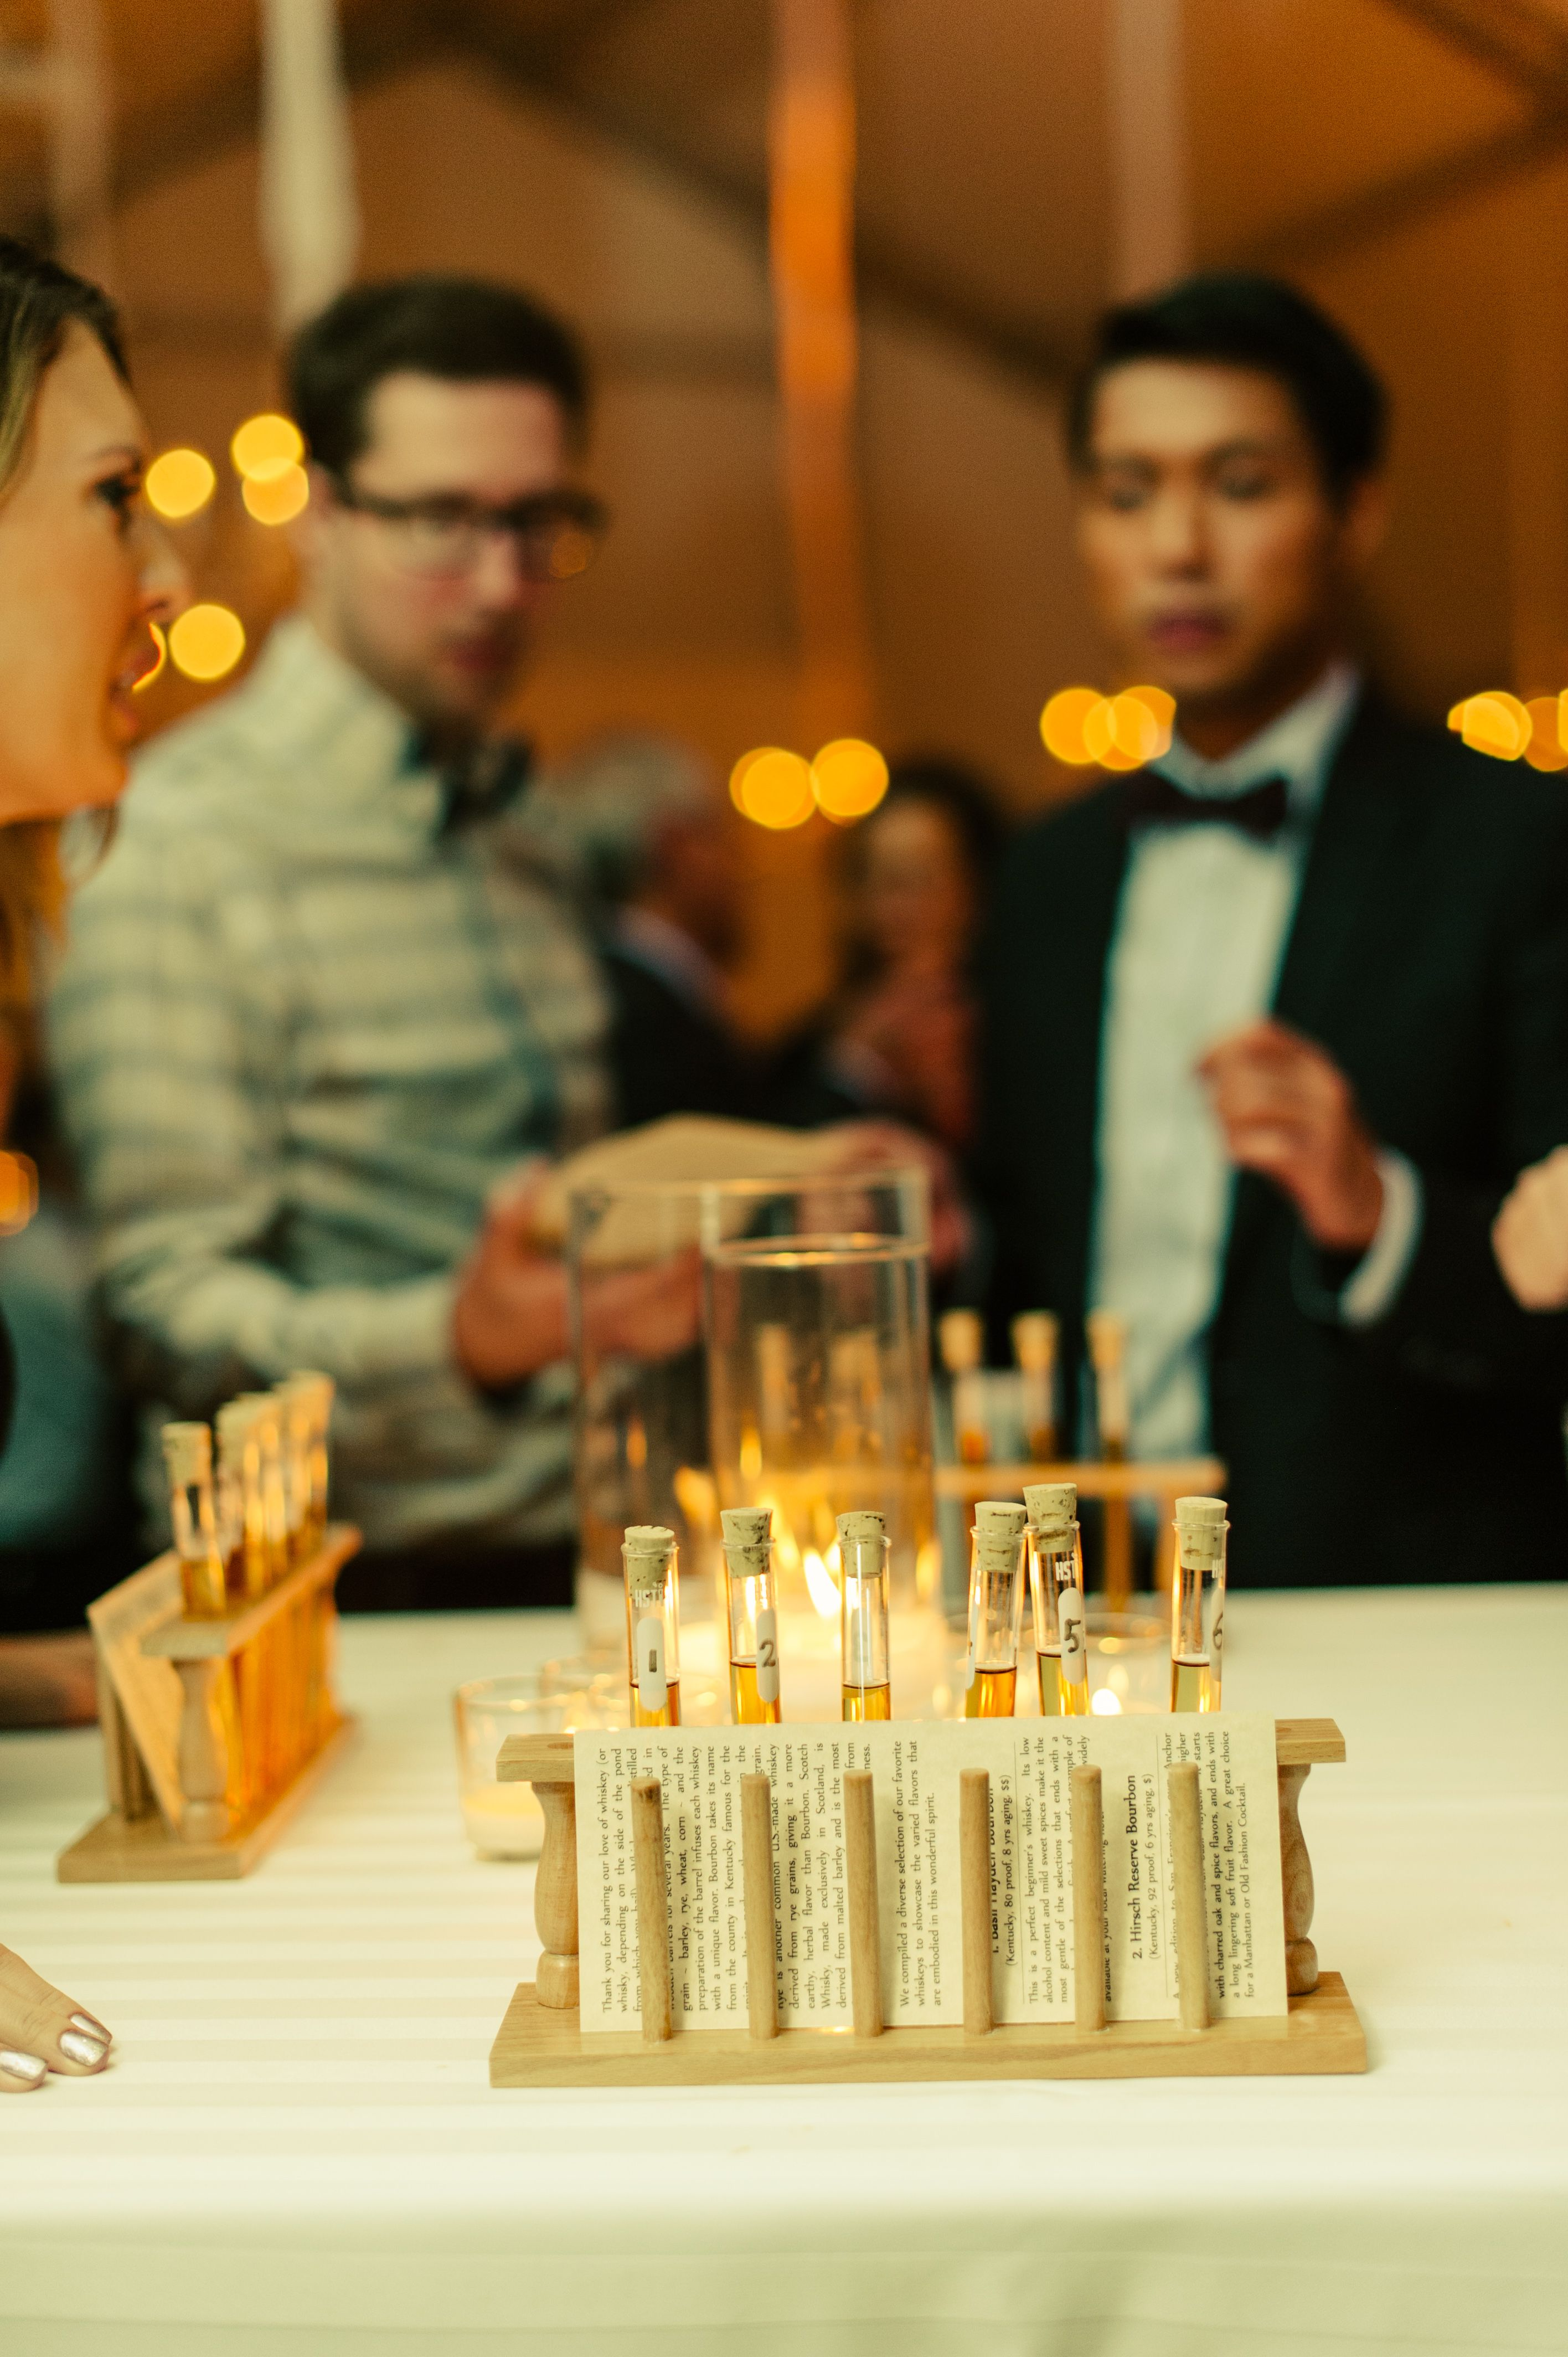 Whiskey tasting at the reception // Photo by Maddie